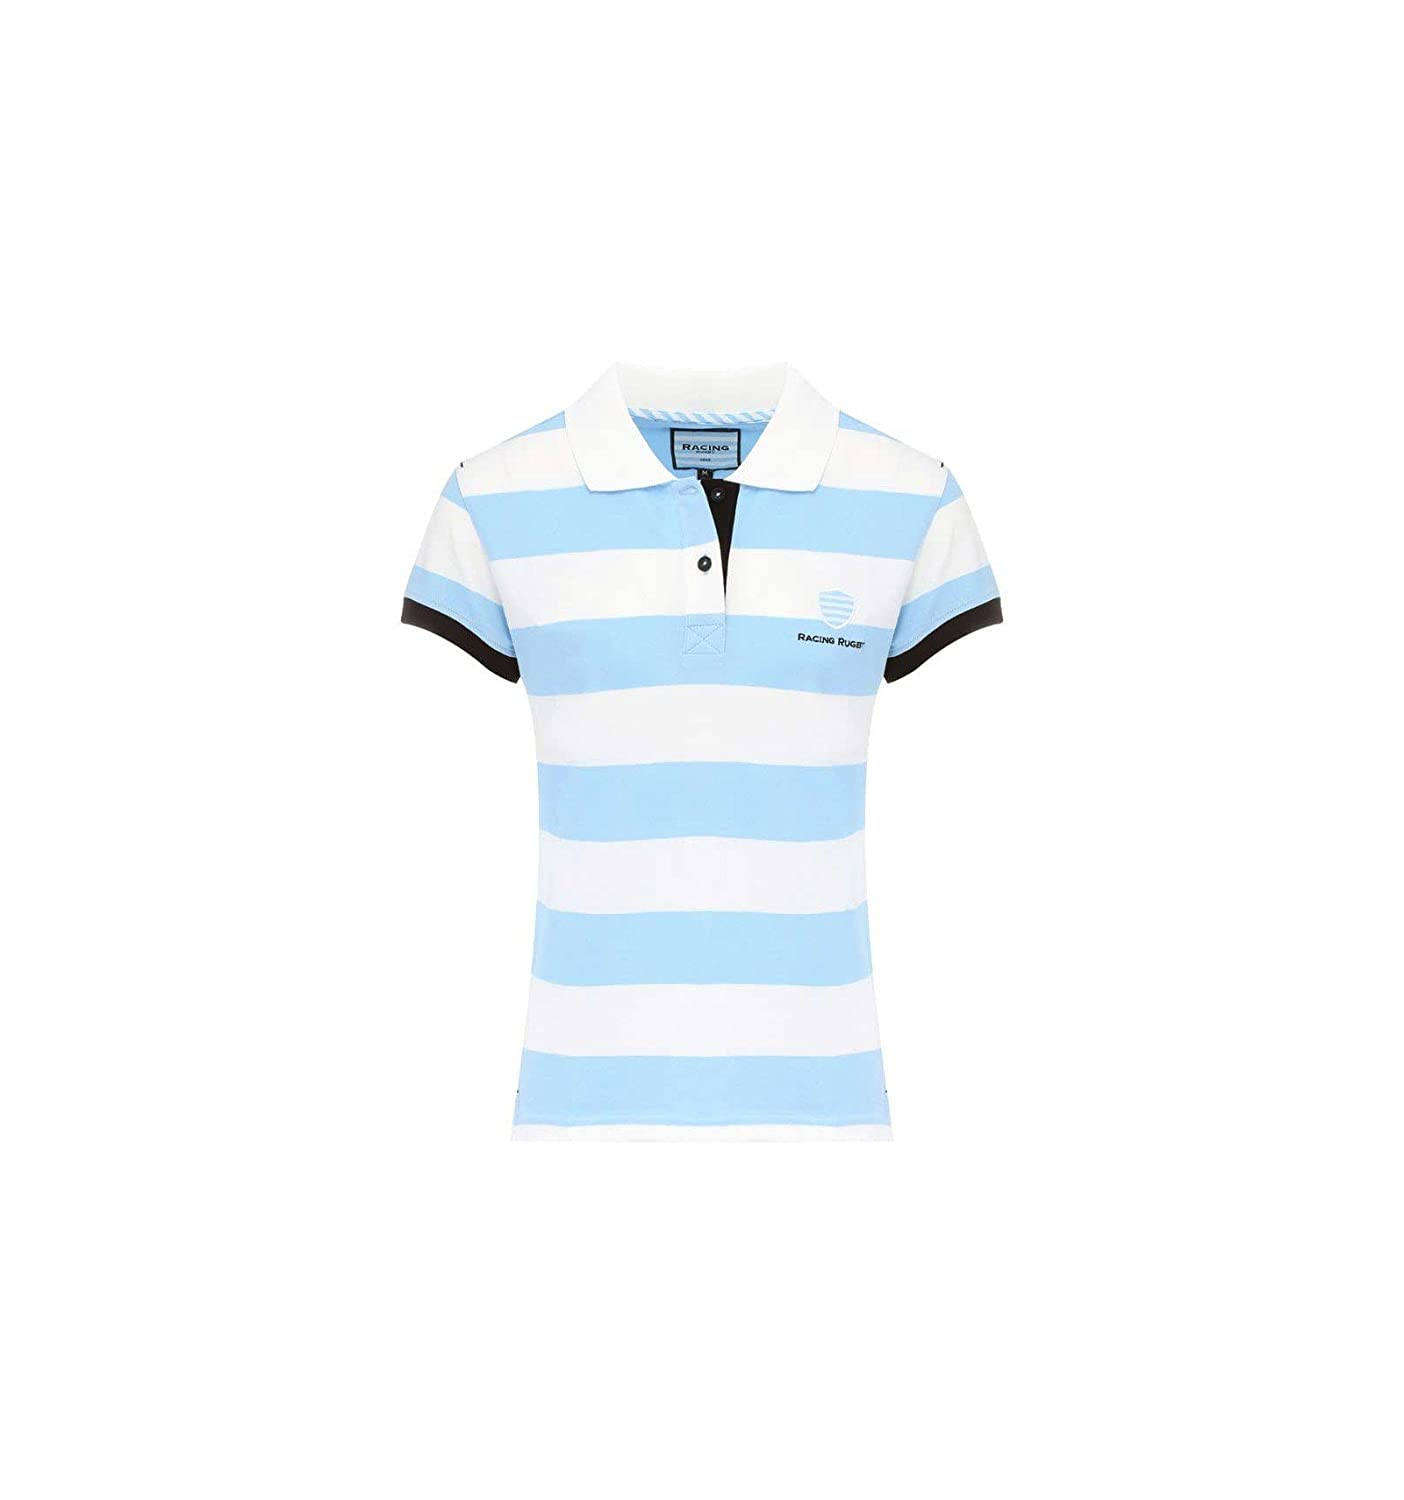 RACING 1882 Polo Rugby Femme - Racing 92